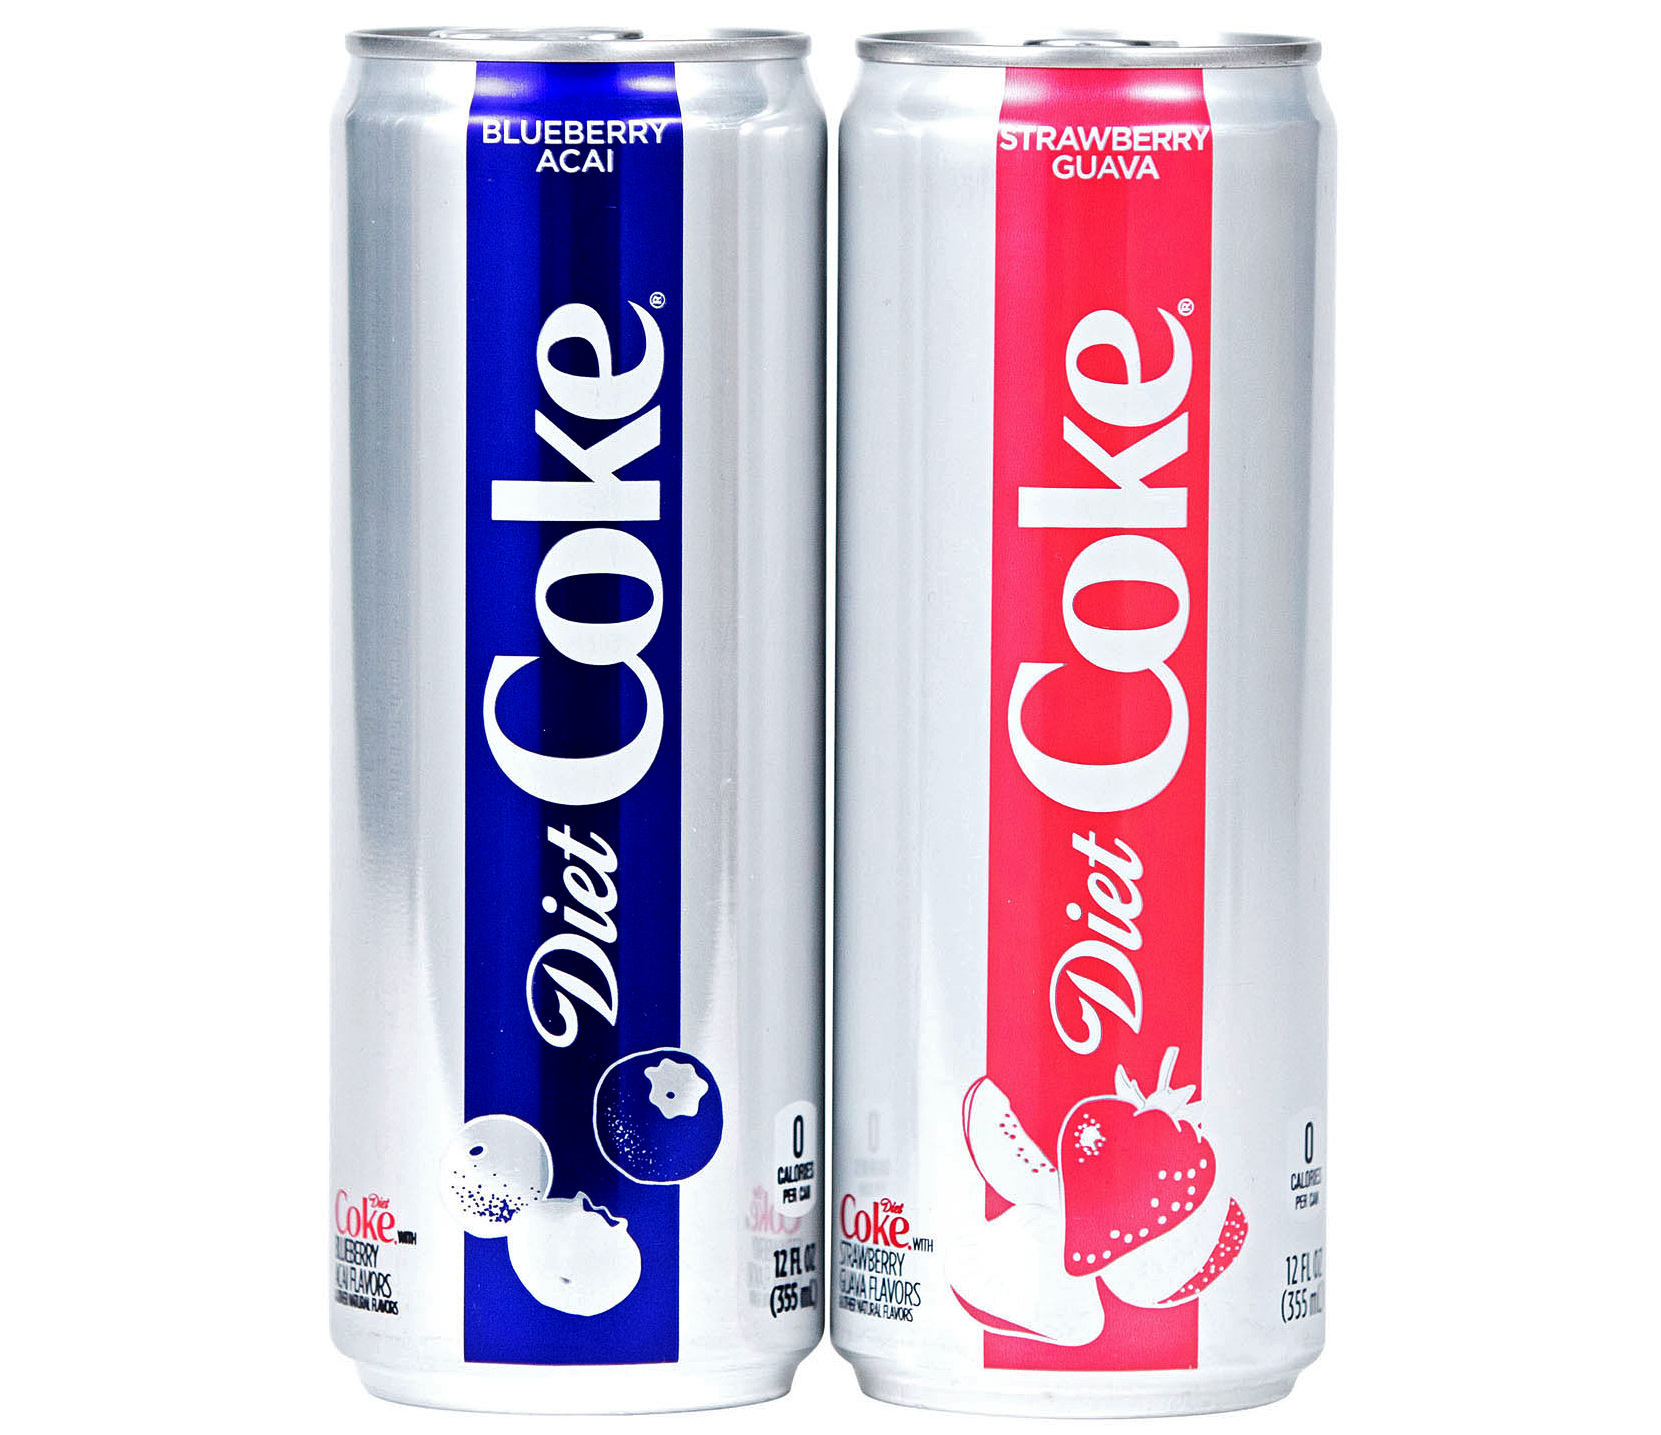 stwarberry guava and blueberry acai diet coke